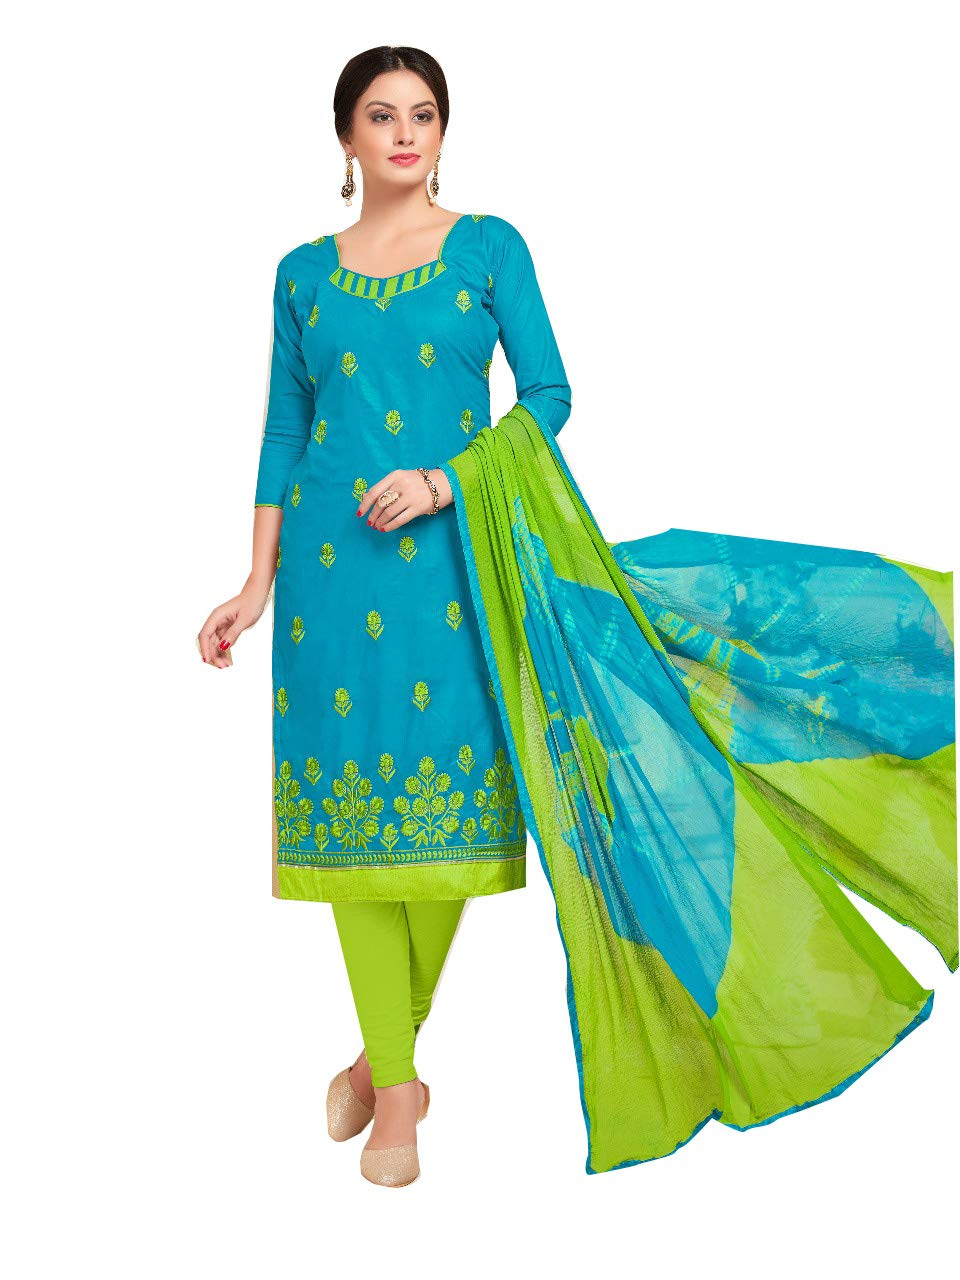 5336d7daf6 Shree Ganesh Retail Womens Lone Cotton With Embroidery Churidar Material |  Salwar Suit | Salwar Kameez Unstitched Dress Material (BLUE & PARROT GREEN  1004)